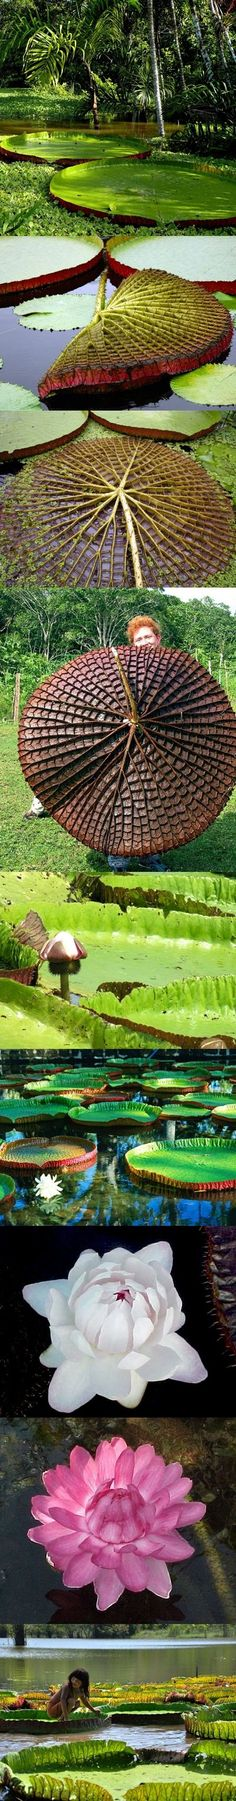 These giant lotus pads 'Victoria amazonica' as the name suggests are originally from the Amazon rainforest.